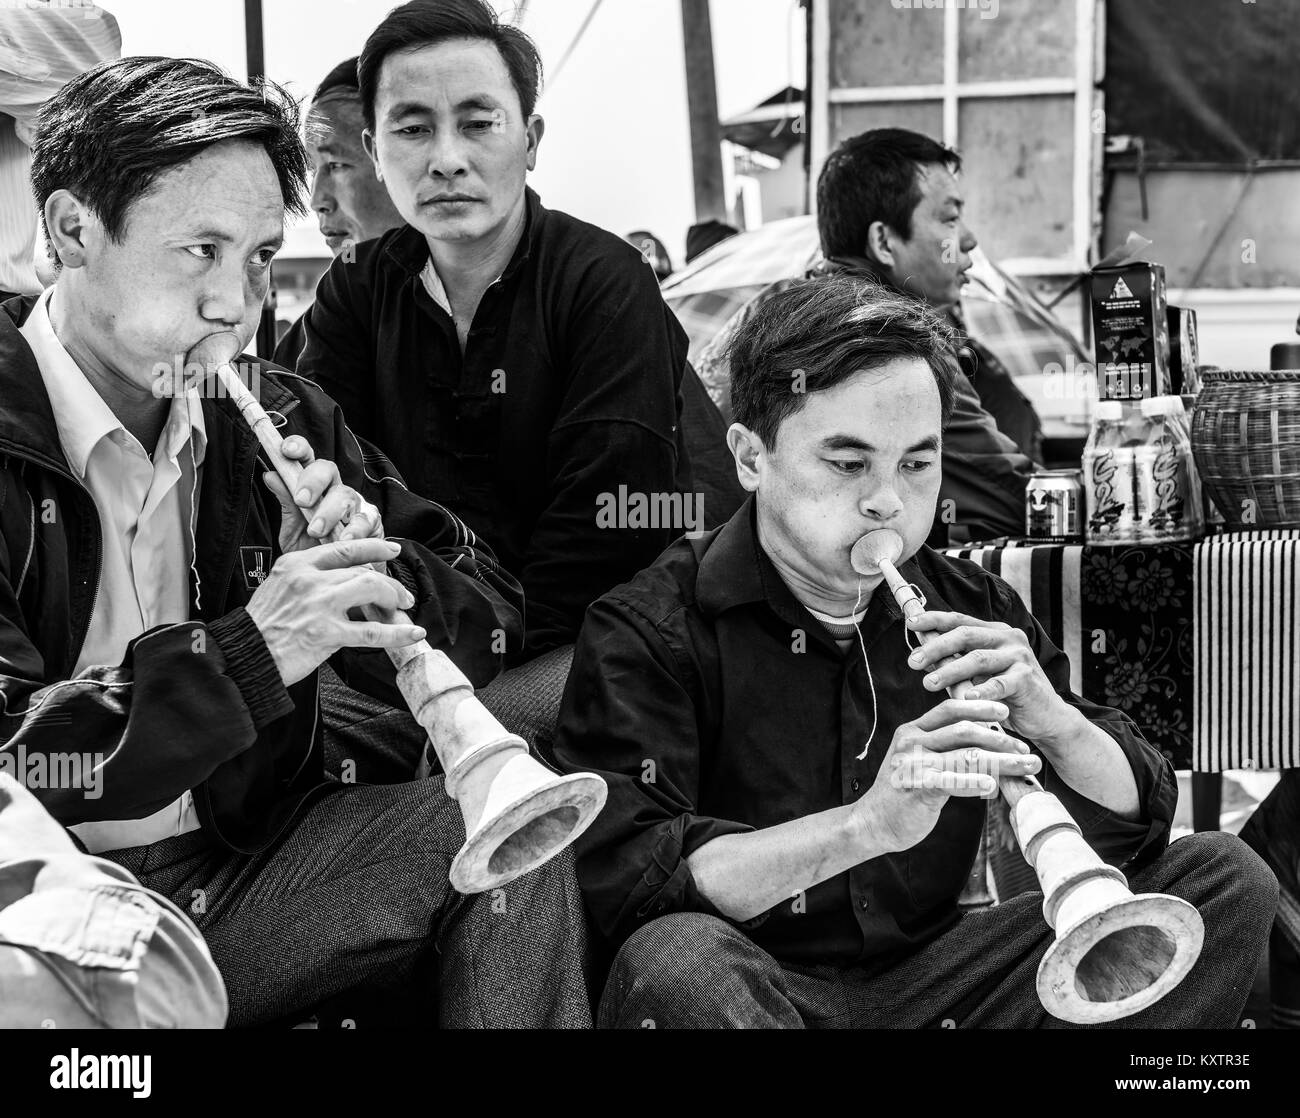 Men playing traditional music instrument in Sapa market, Vietnam - Stock Image